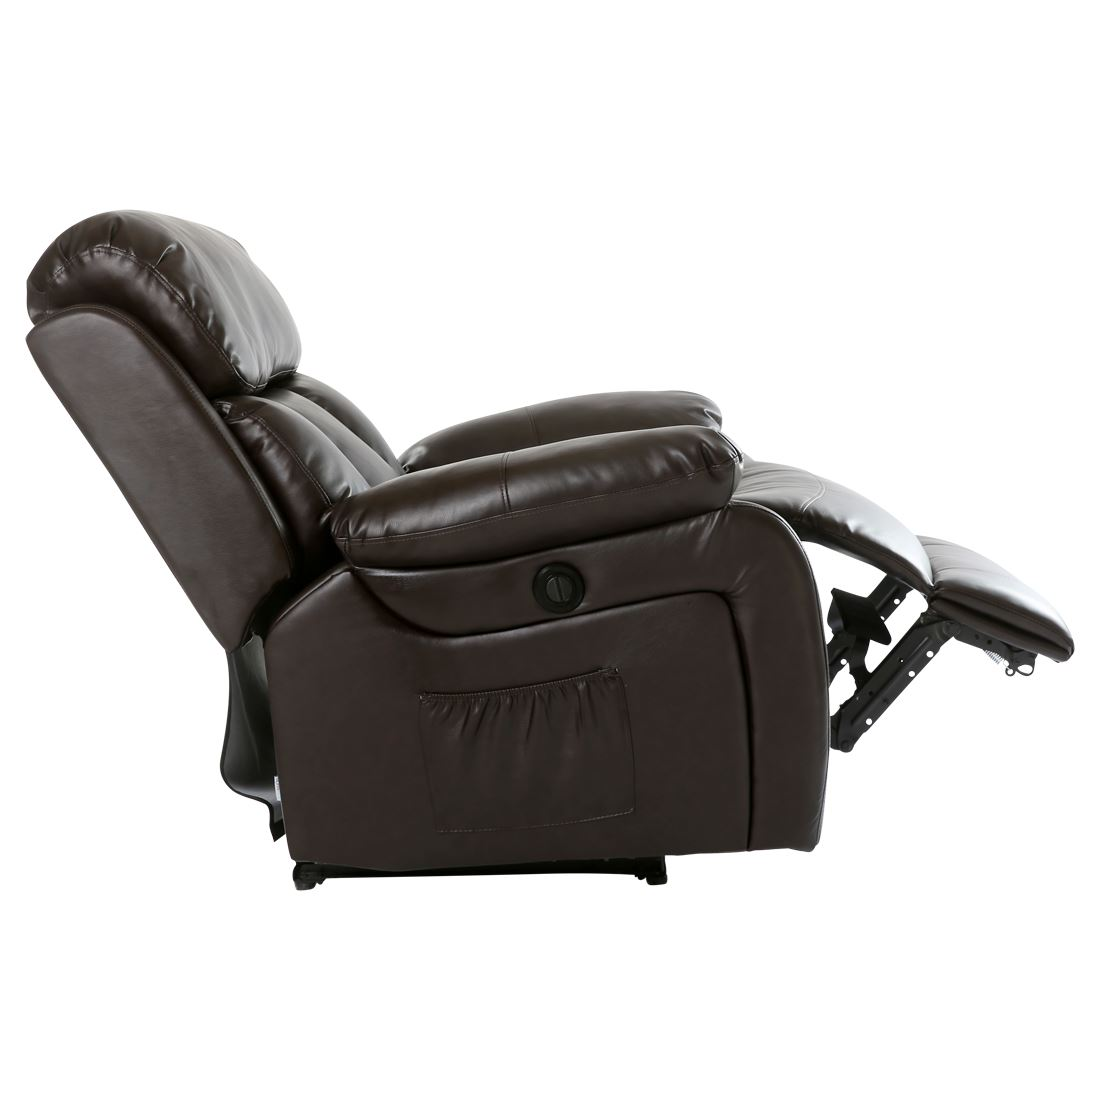 electric recliner sofa not working small es configurable sectional dimensions chester heated leather massage chair